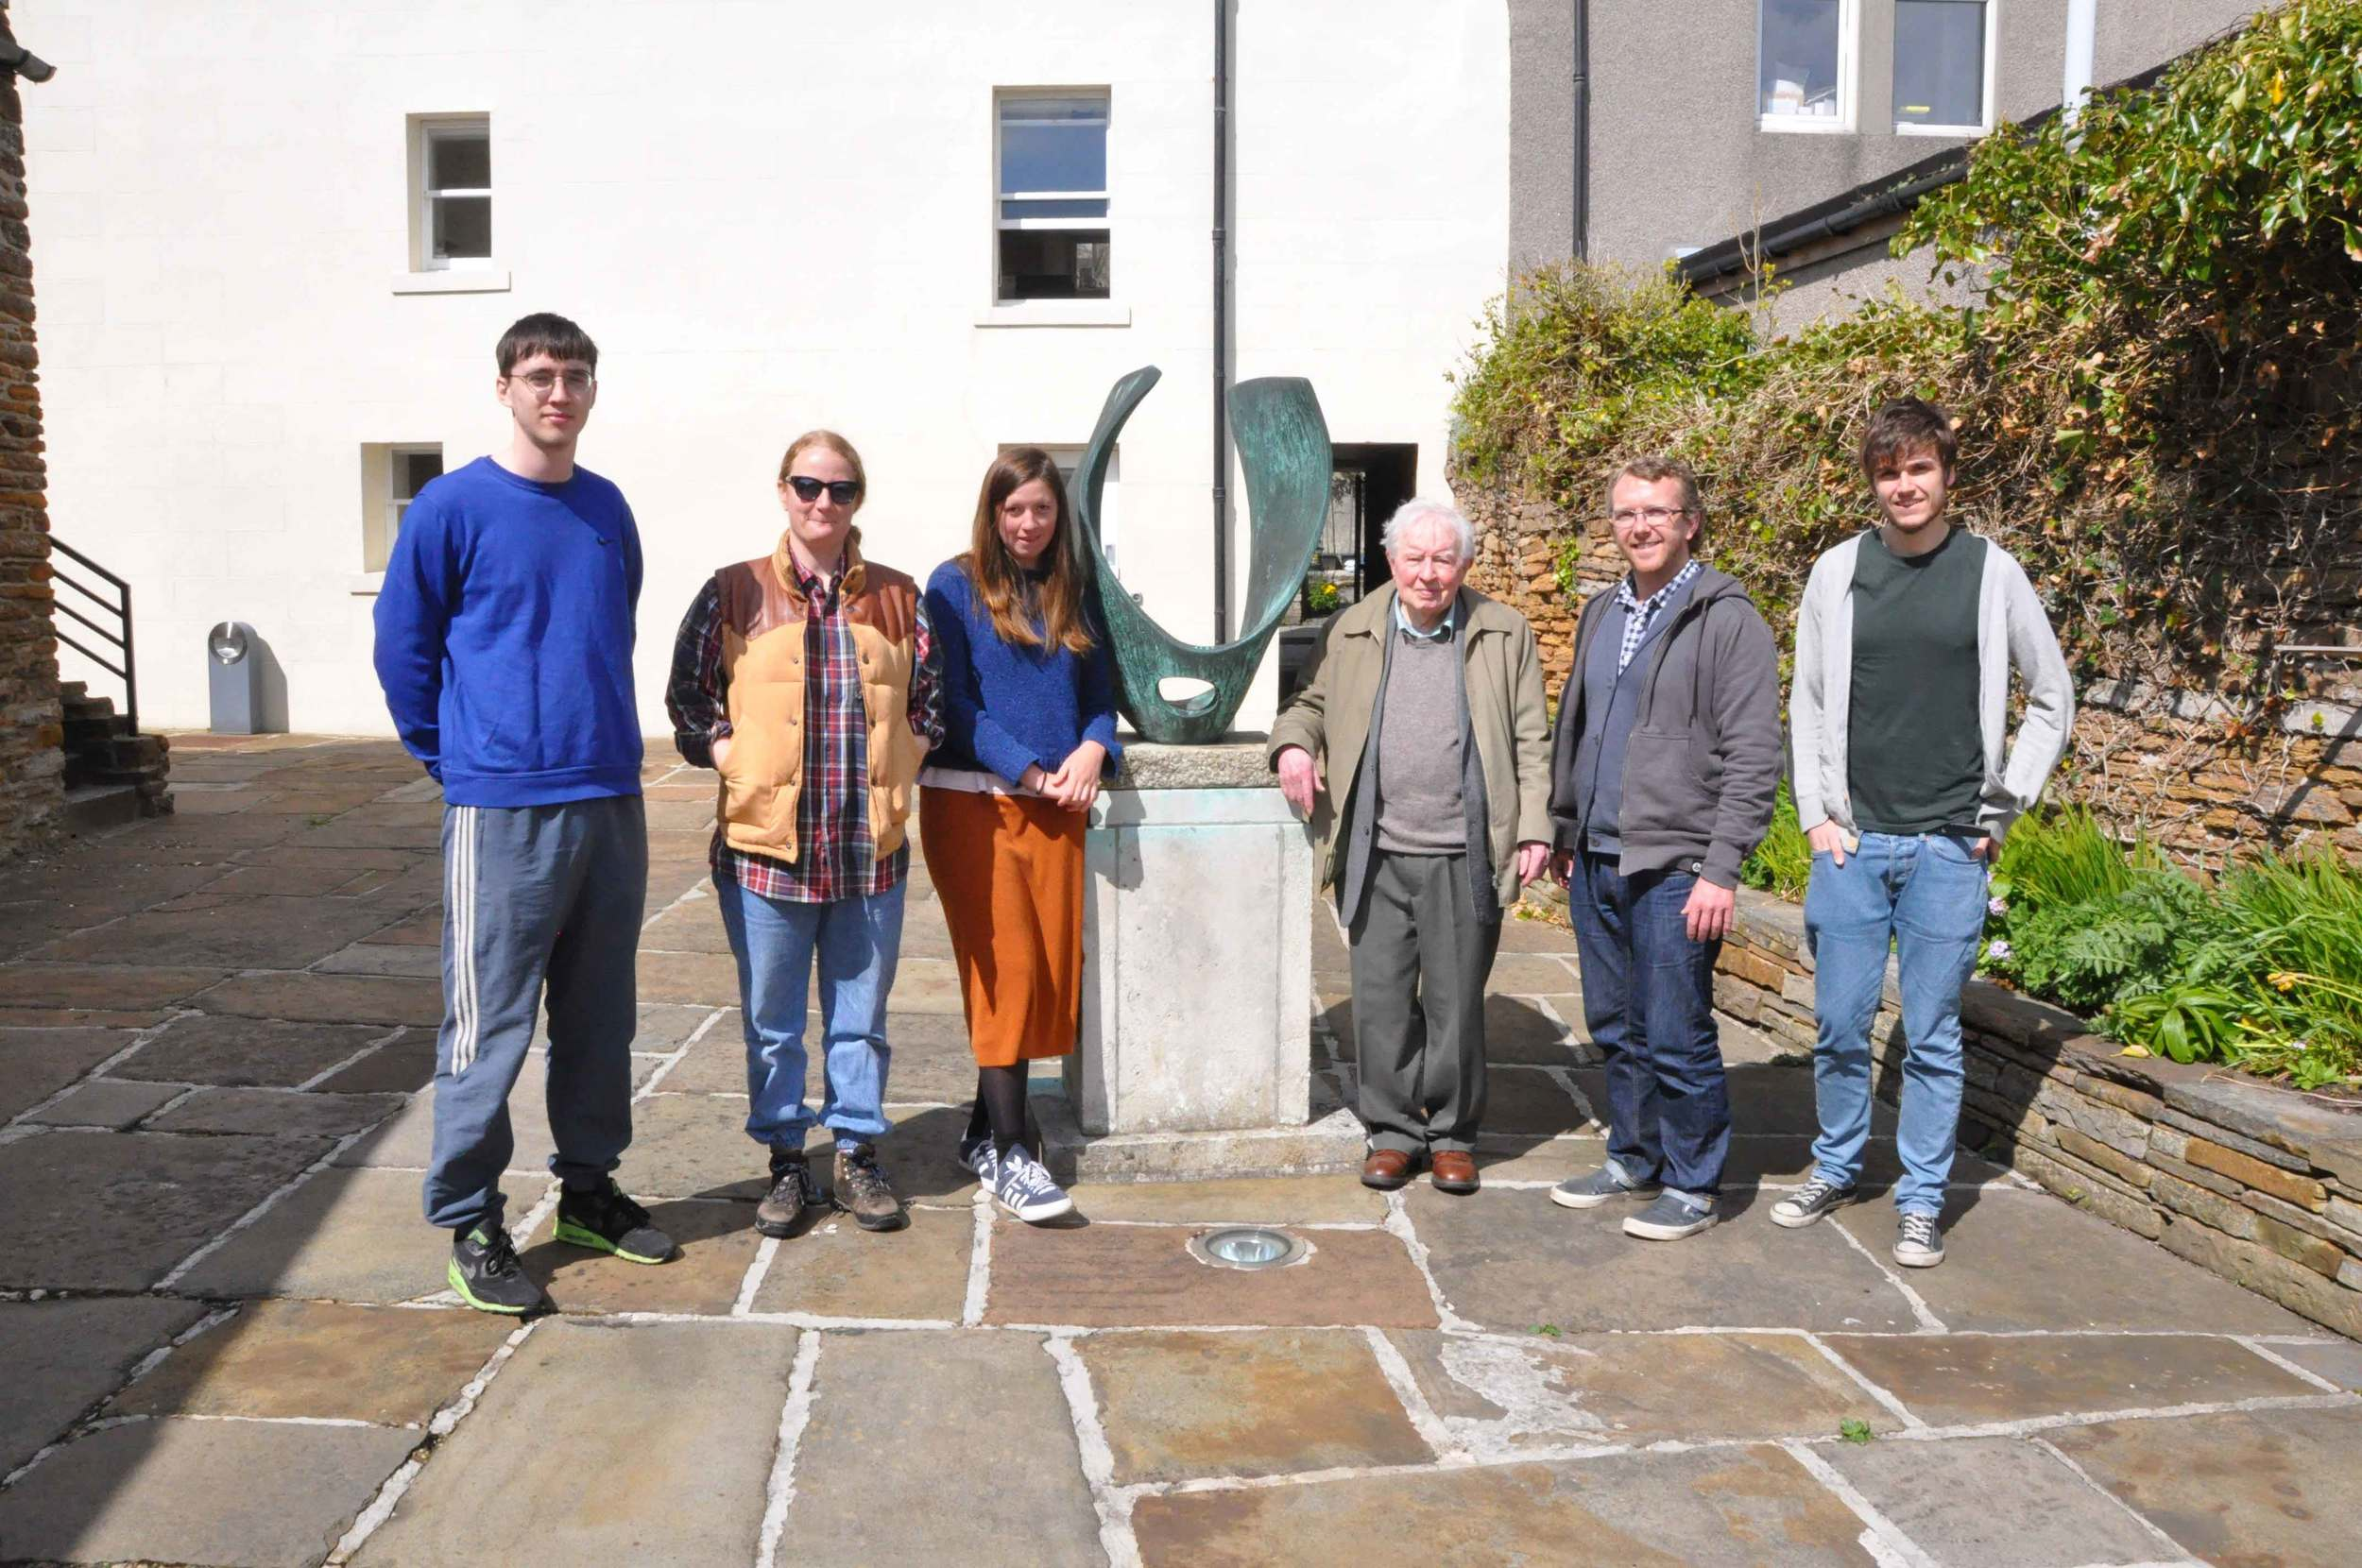 Nick Thomas (LUX), Charlotte Prodger, Florrie James, the late Alex Pirie, husband of Margaret Tait,Luke Colllins (LUX) & Sean Greenhorn of Glasgow Film Festival in 2015